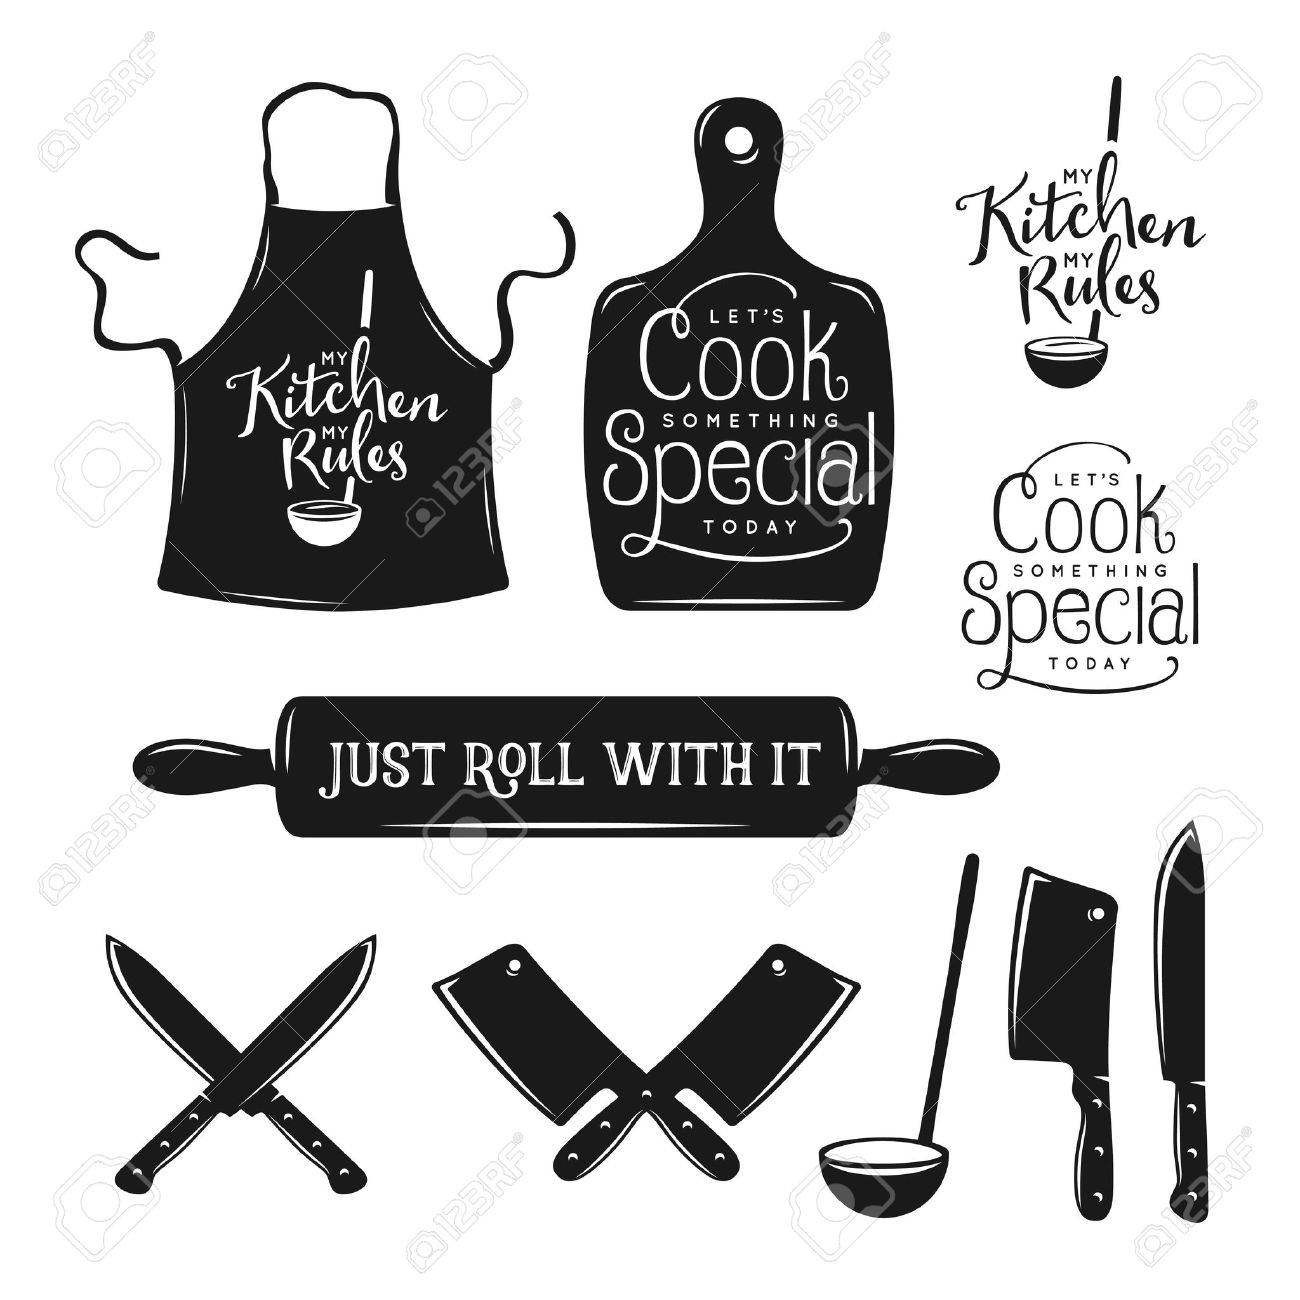 Kitchen related typography set. Quotes about cooking. My kitchen, my rules. Just roll with it. Lets cook something special. Vintage vector illustration. - 52087084